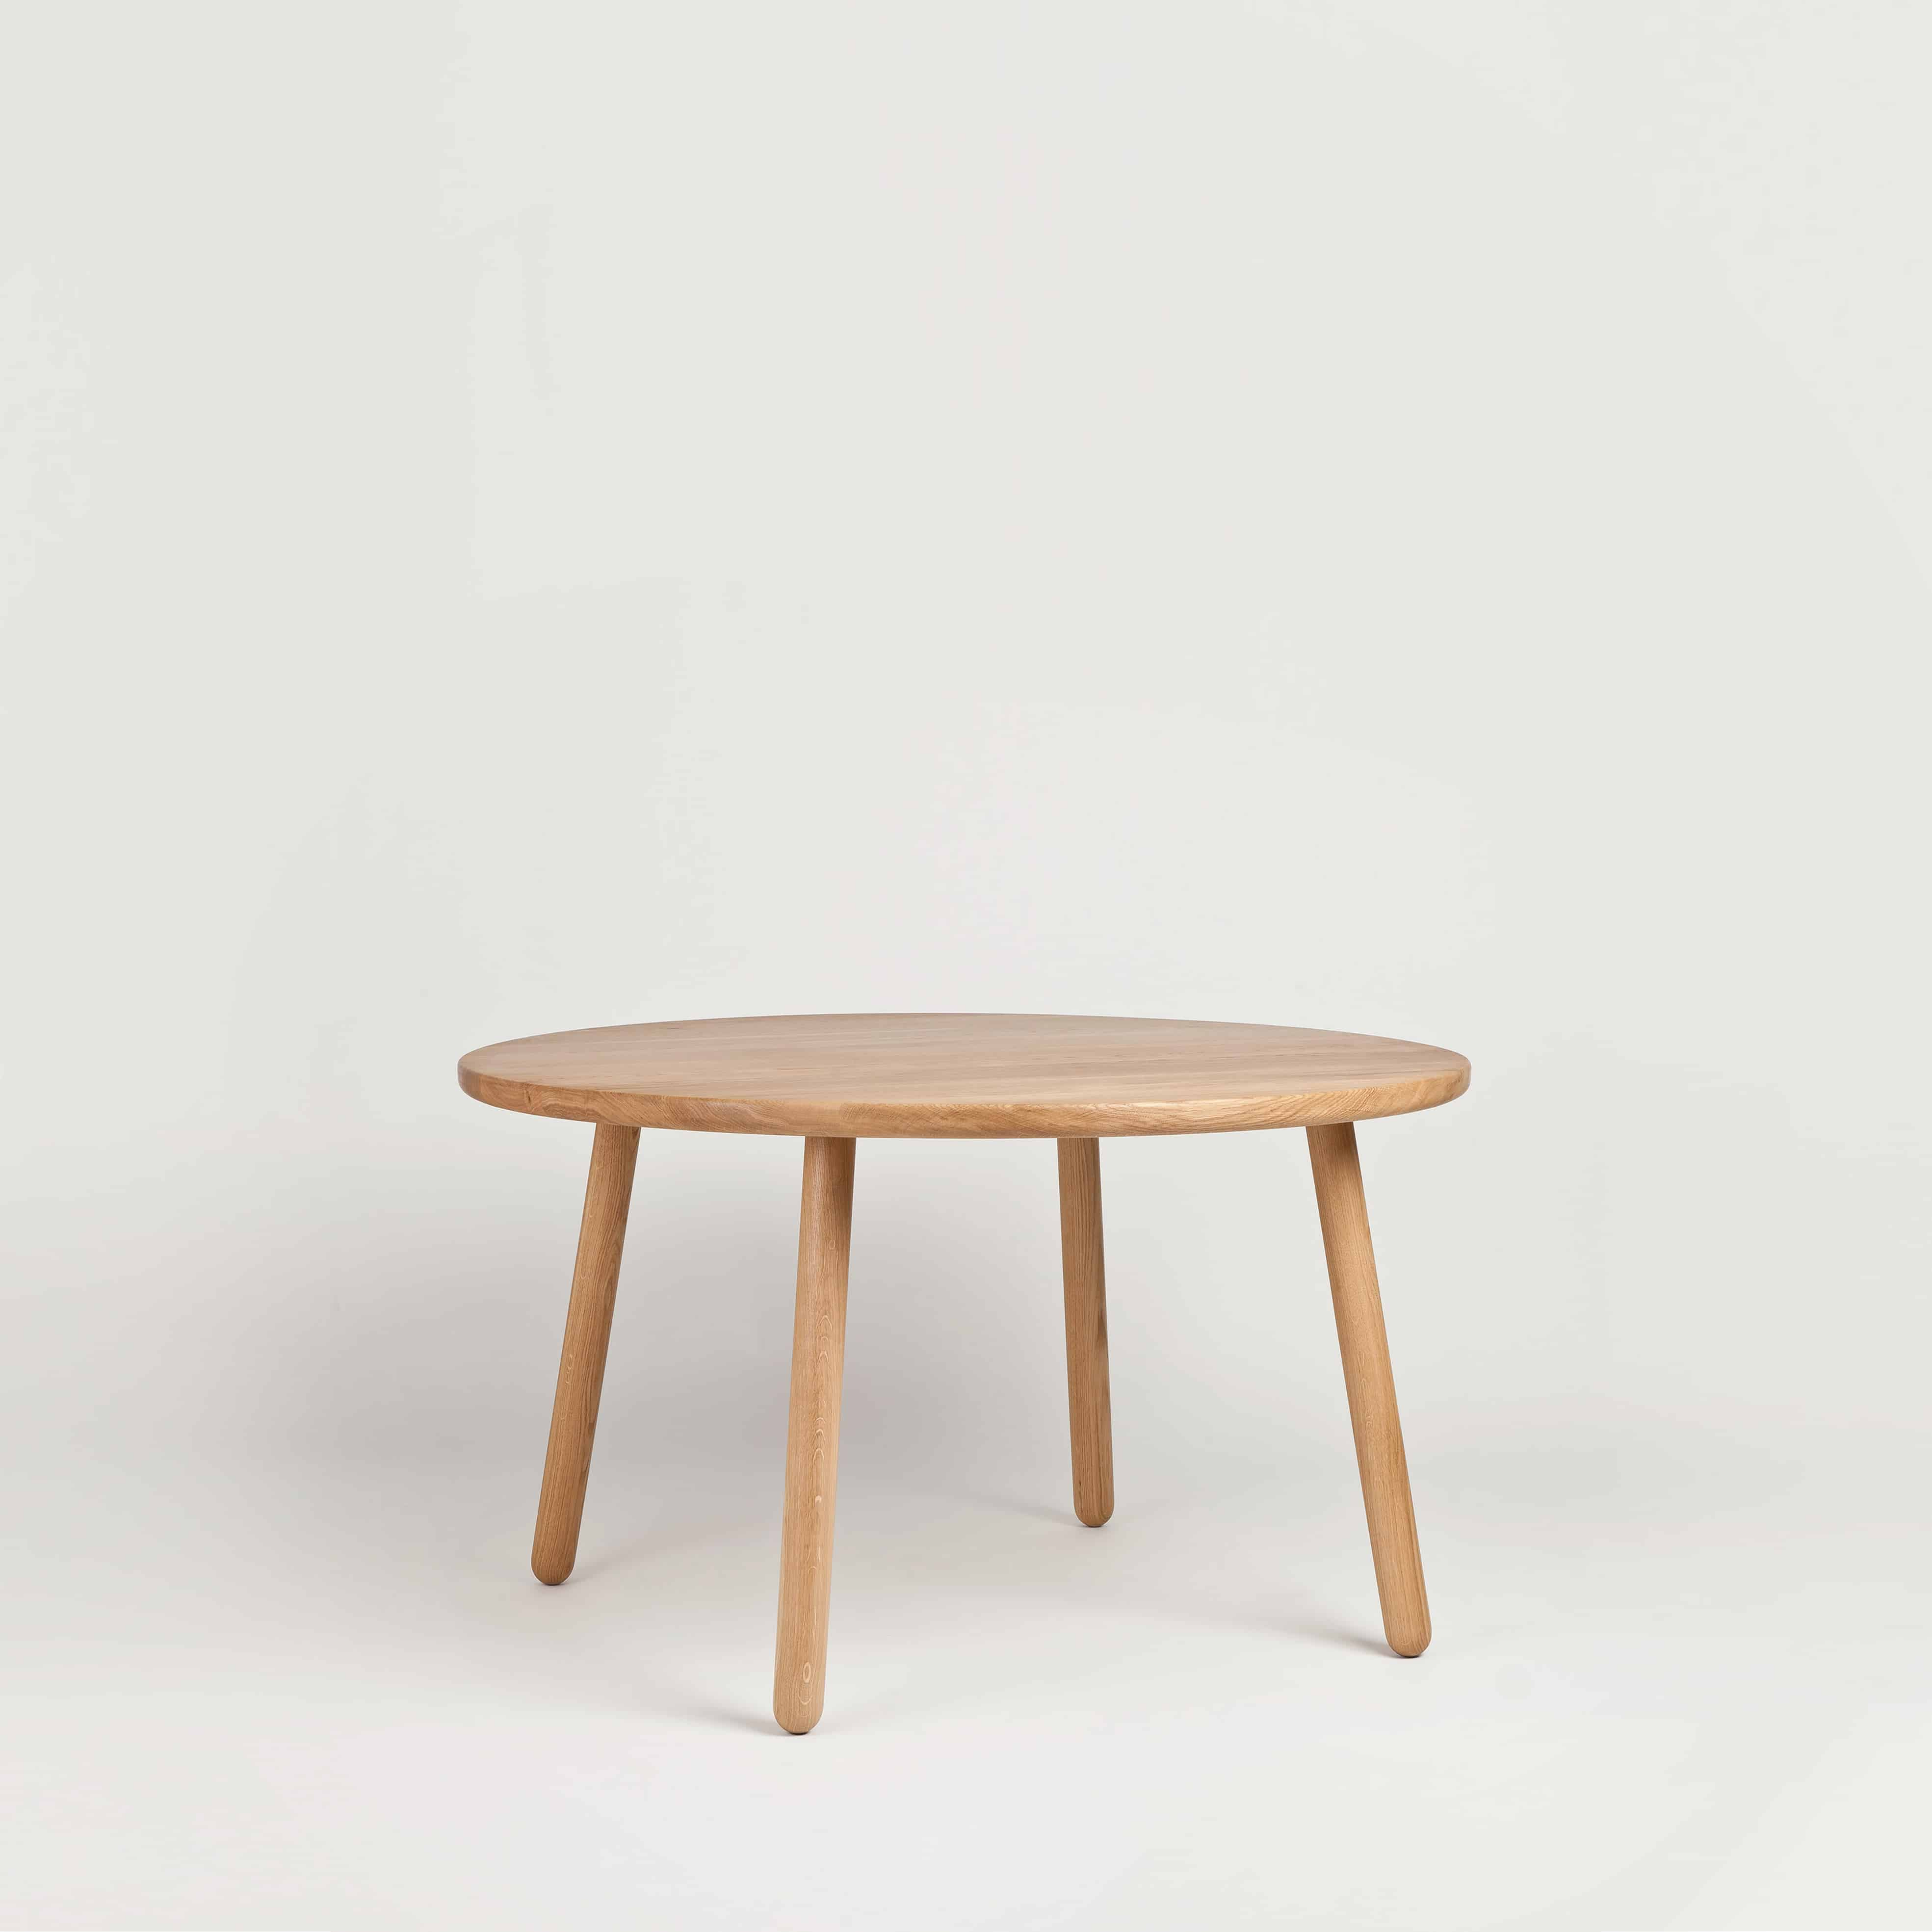 Dining Table One Round Oak